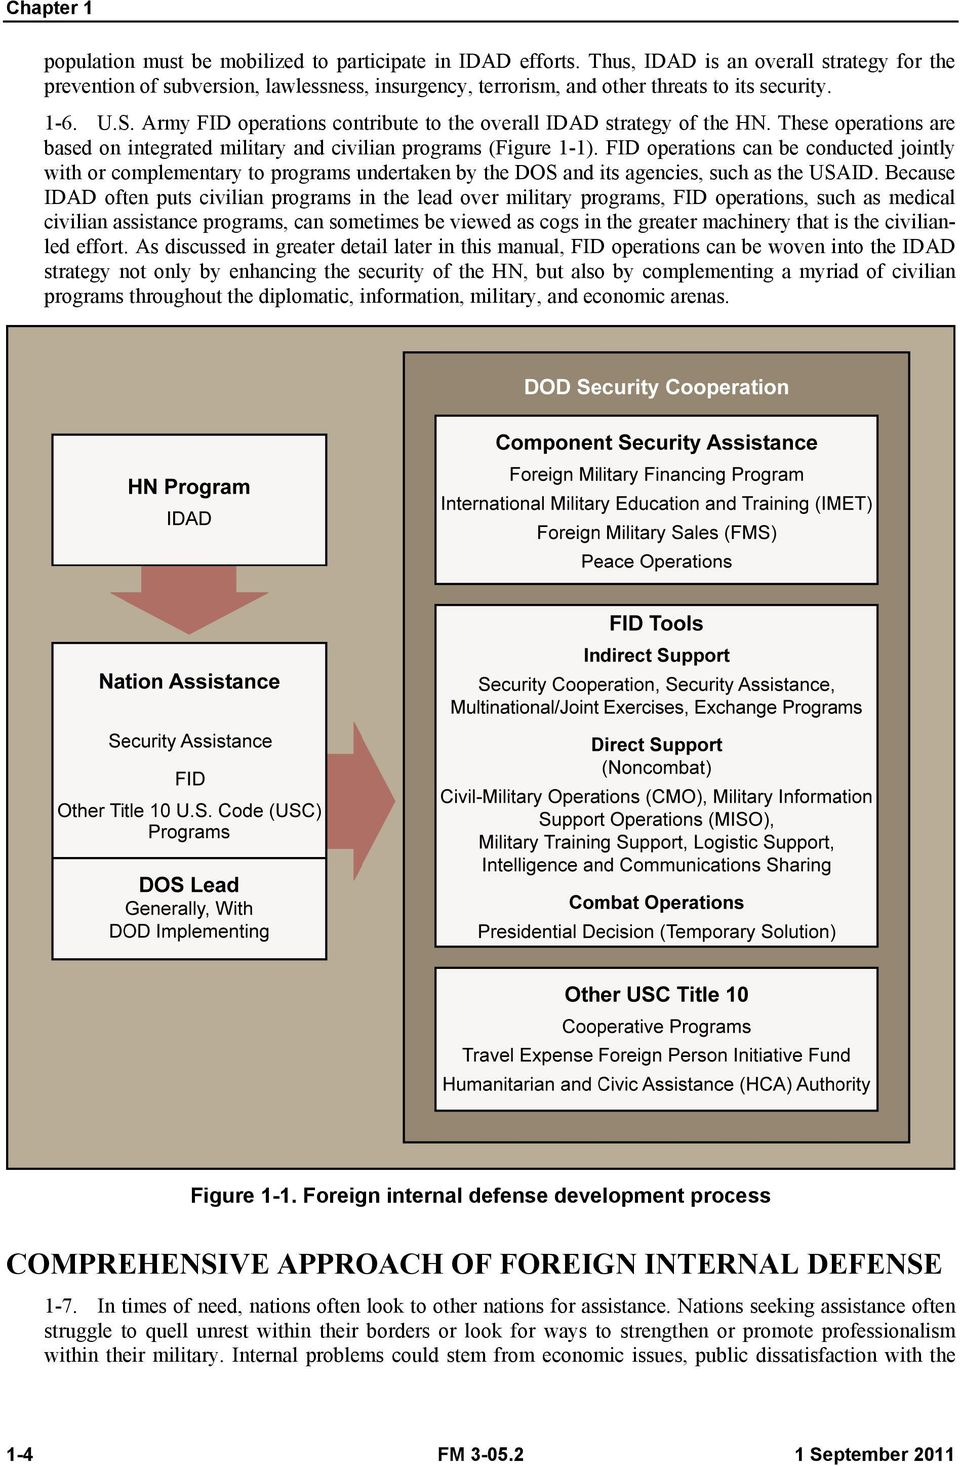 Army FID operations contribute to the overall IDAD strategy of the HN. These operations are based on integrated military and civilian programs (Figure 1-1).